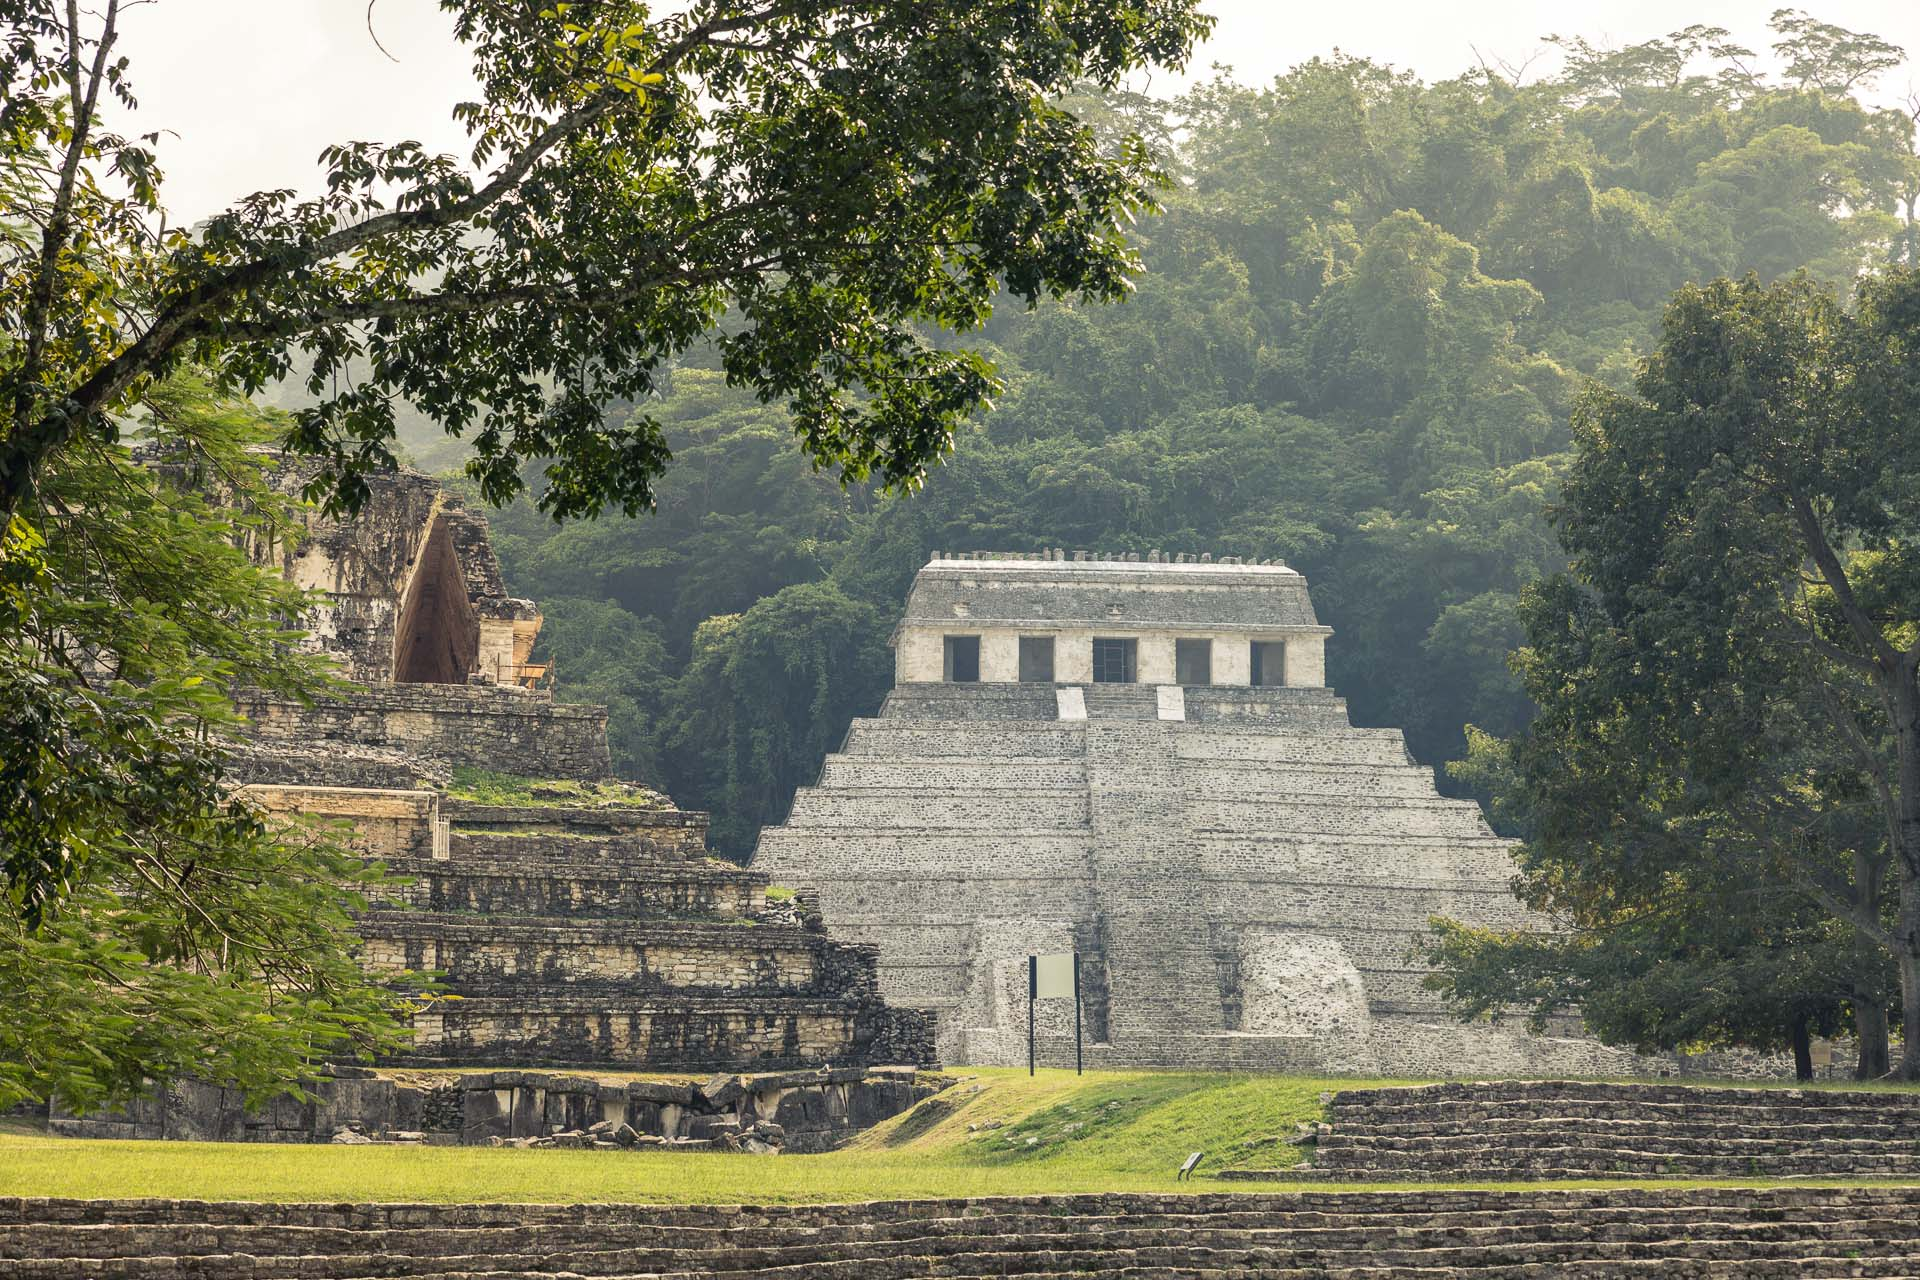 I really loved the Palenque ruins. Easily my favourite old things in Mexico.